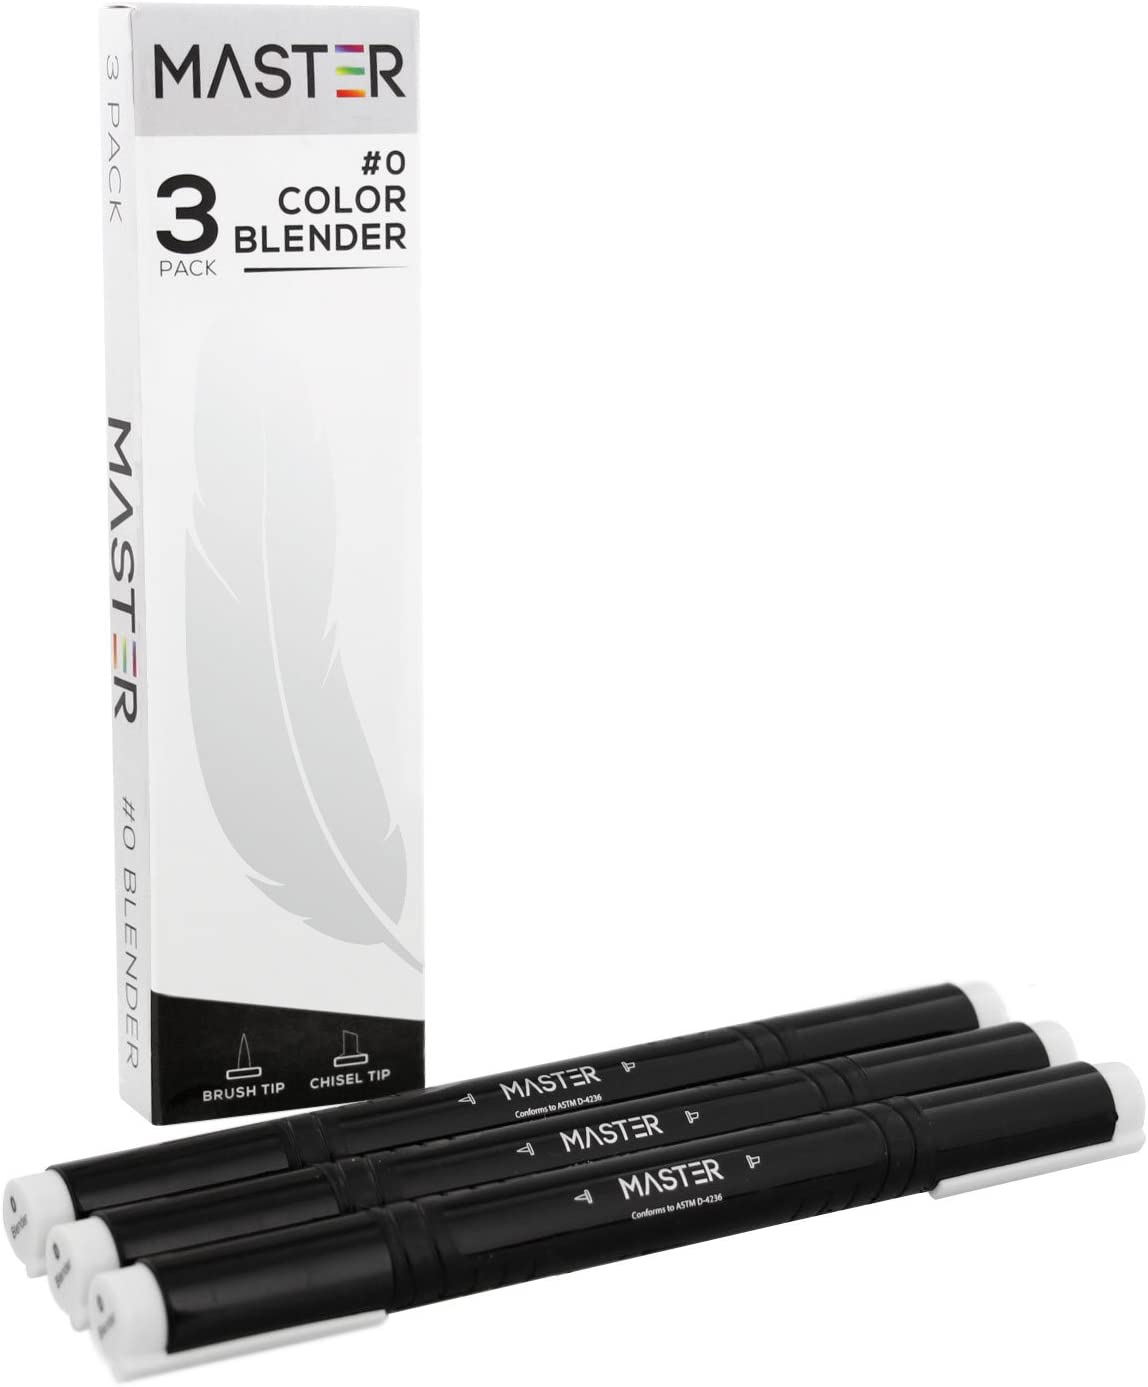 Master Markers Dual Tip Artist Blender Illustration Markers (Pack of 3) - Chisel/Brush Tip, Rubber Comfort Grip and Plastic Carry Case